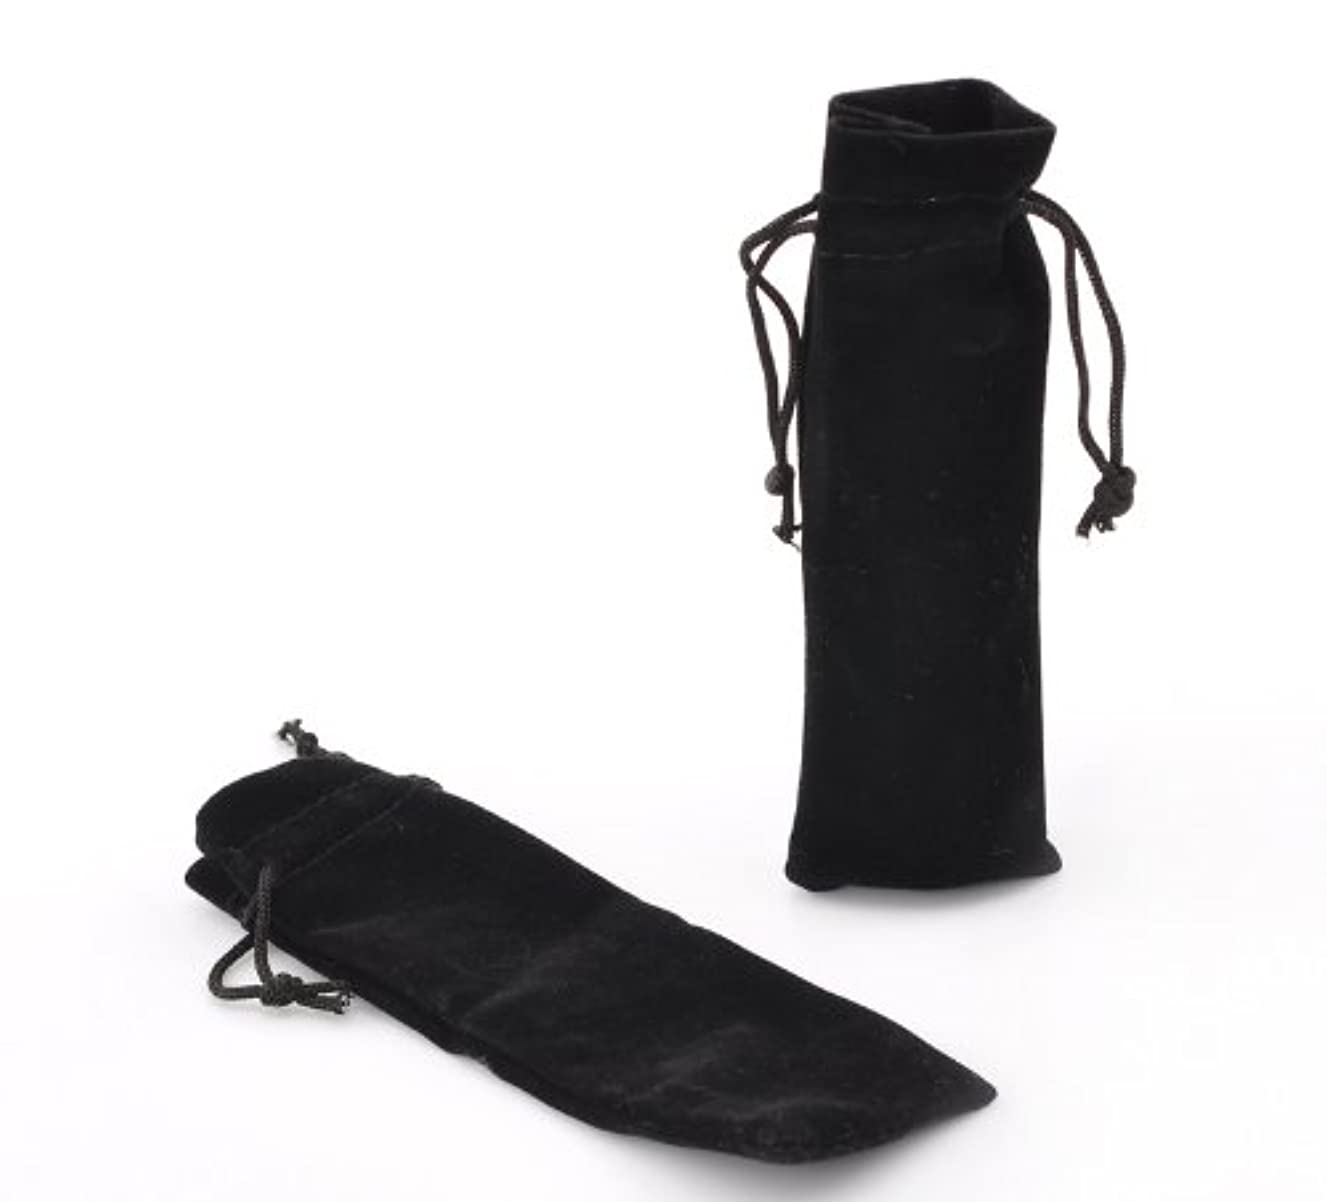 PEPPERLONELY Brand 10PC Black Velvet Drawstring Pouches Jewelry Gift Bags 15.5x5.5cm (6-1/8 x 2-1/8 Inch)